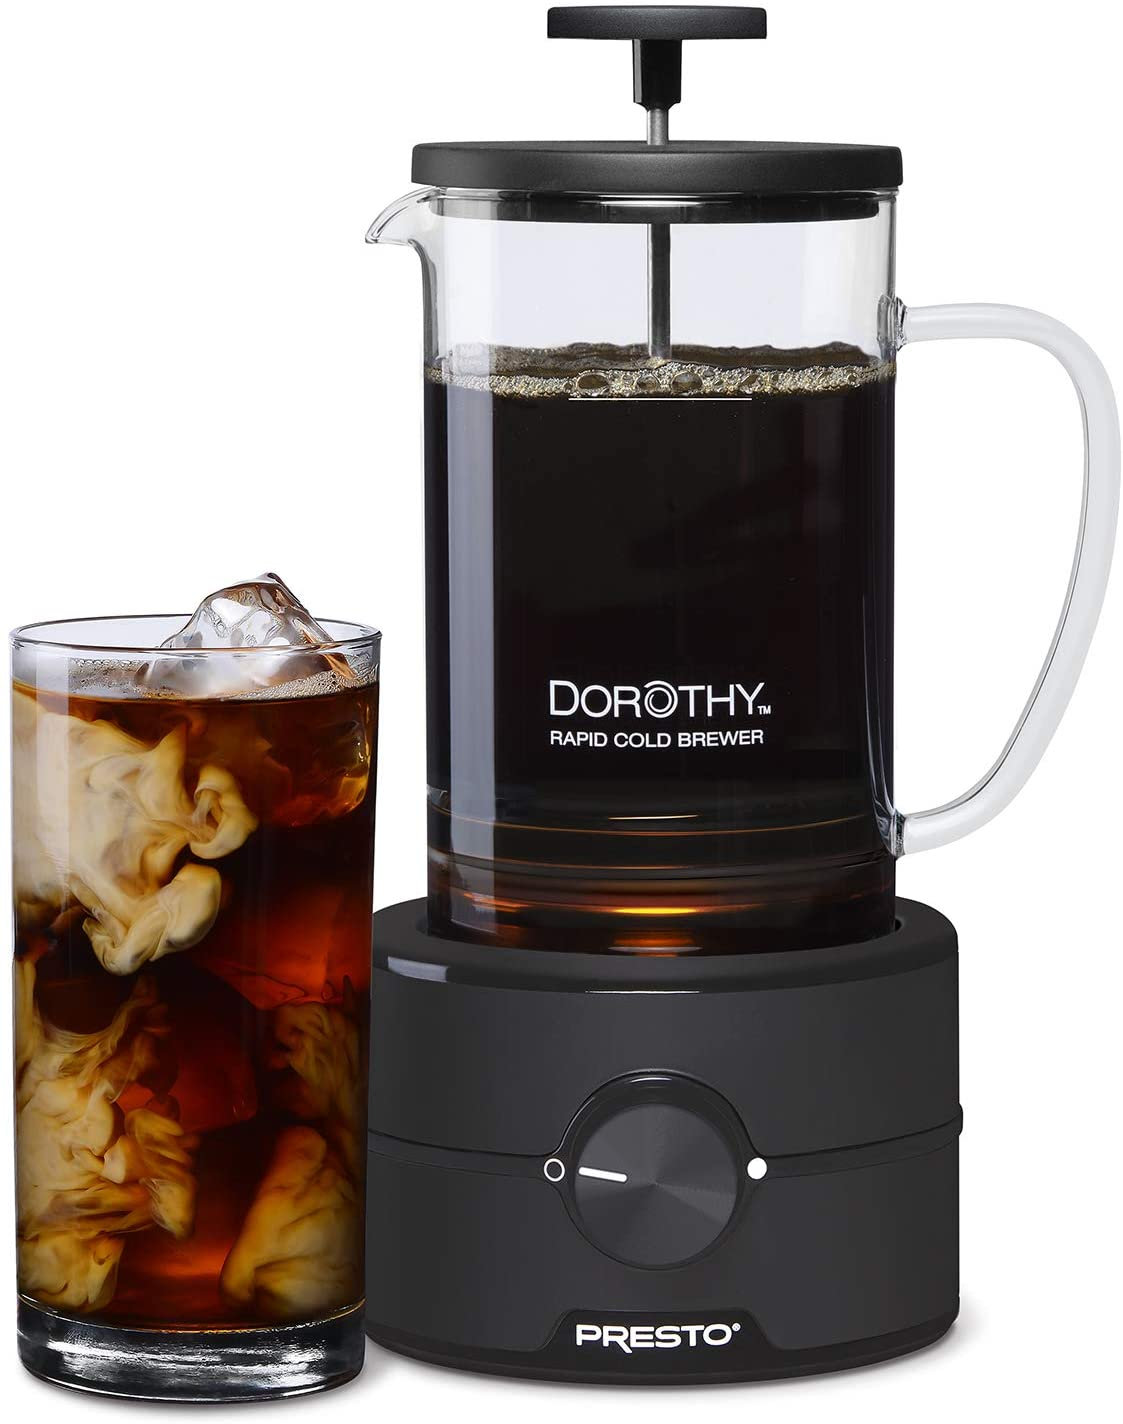 gifts-for-boss-electric-cold-brewer